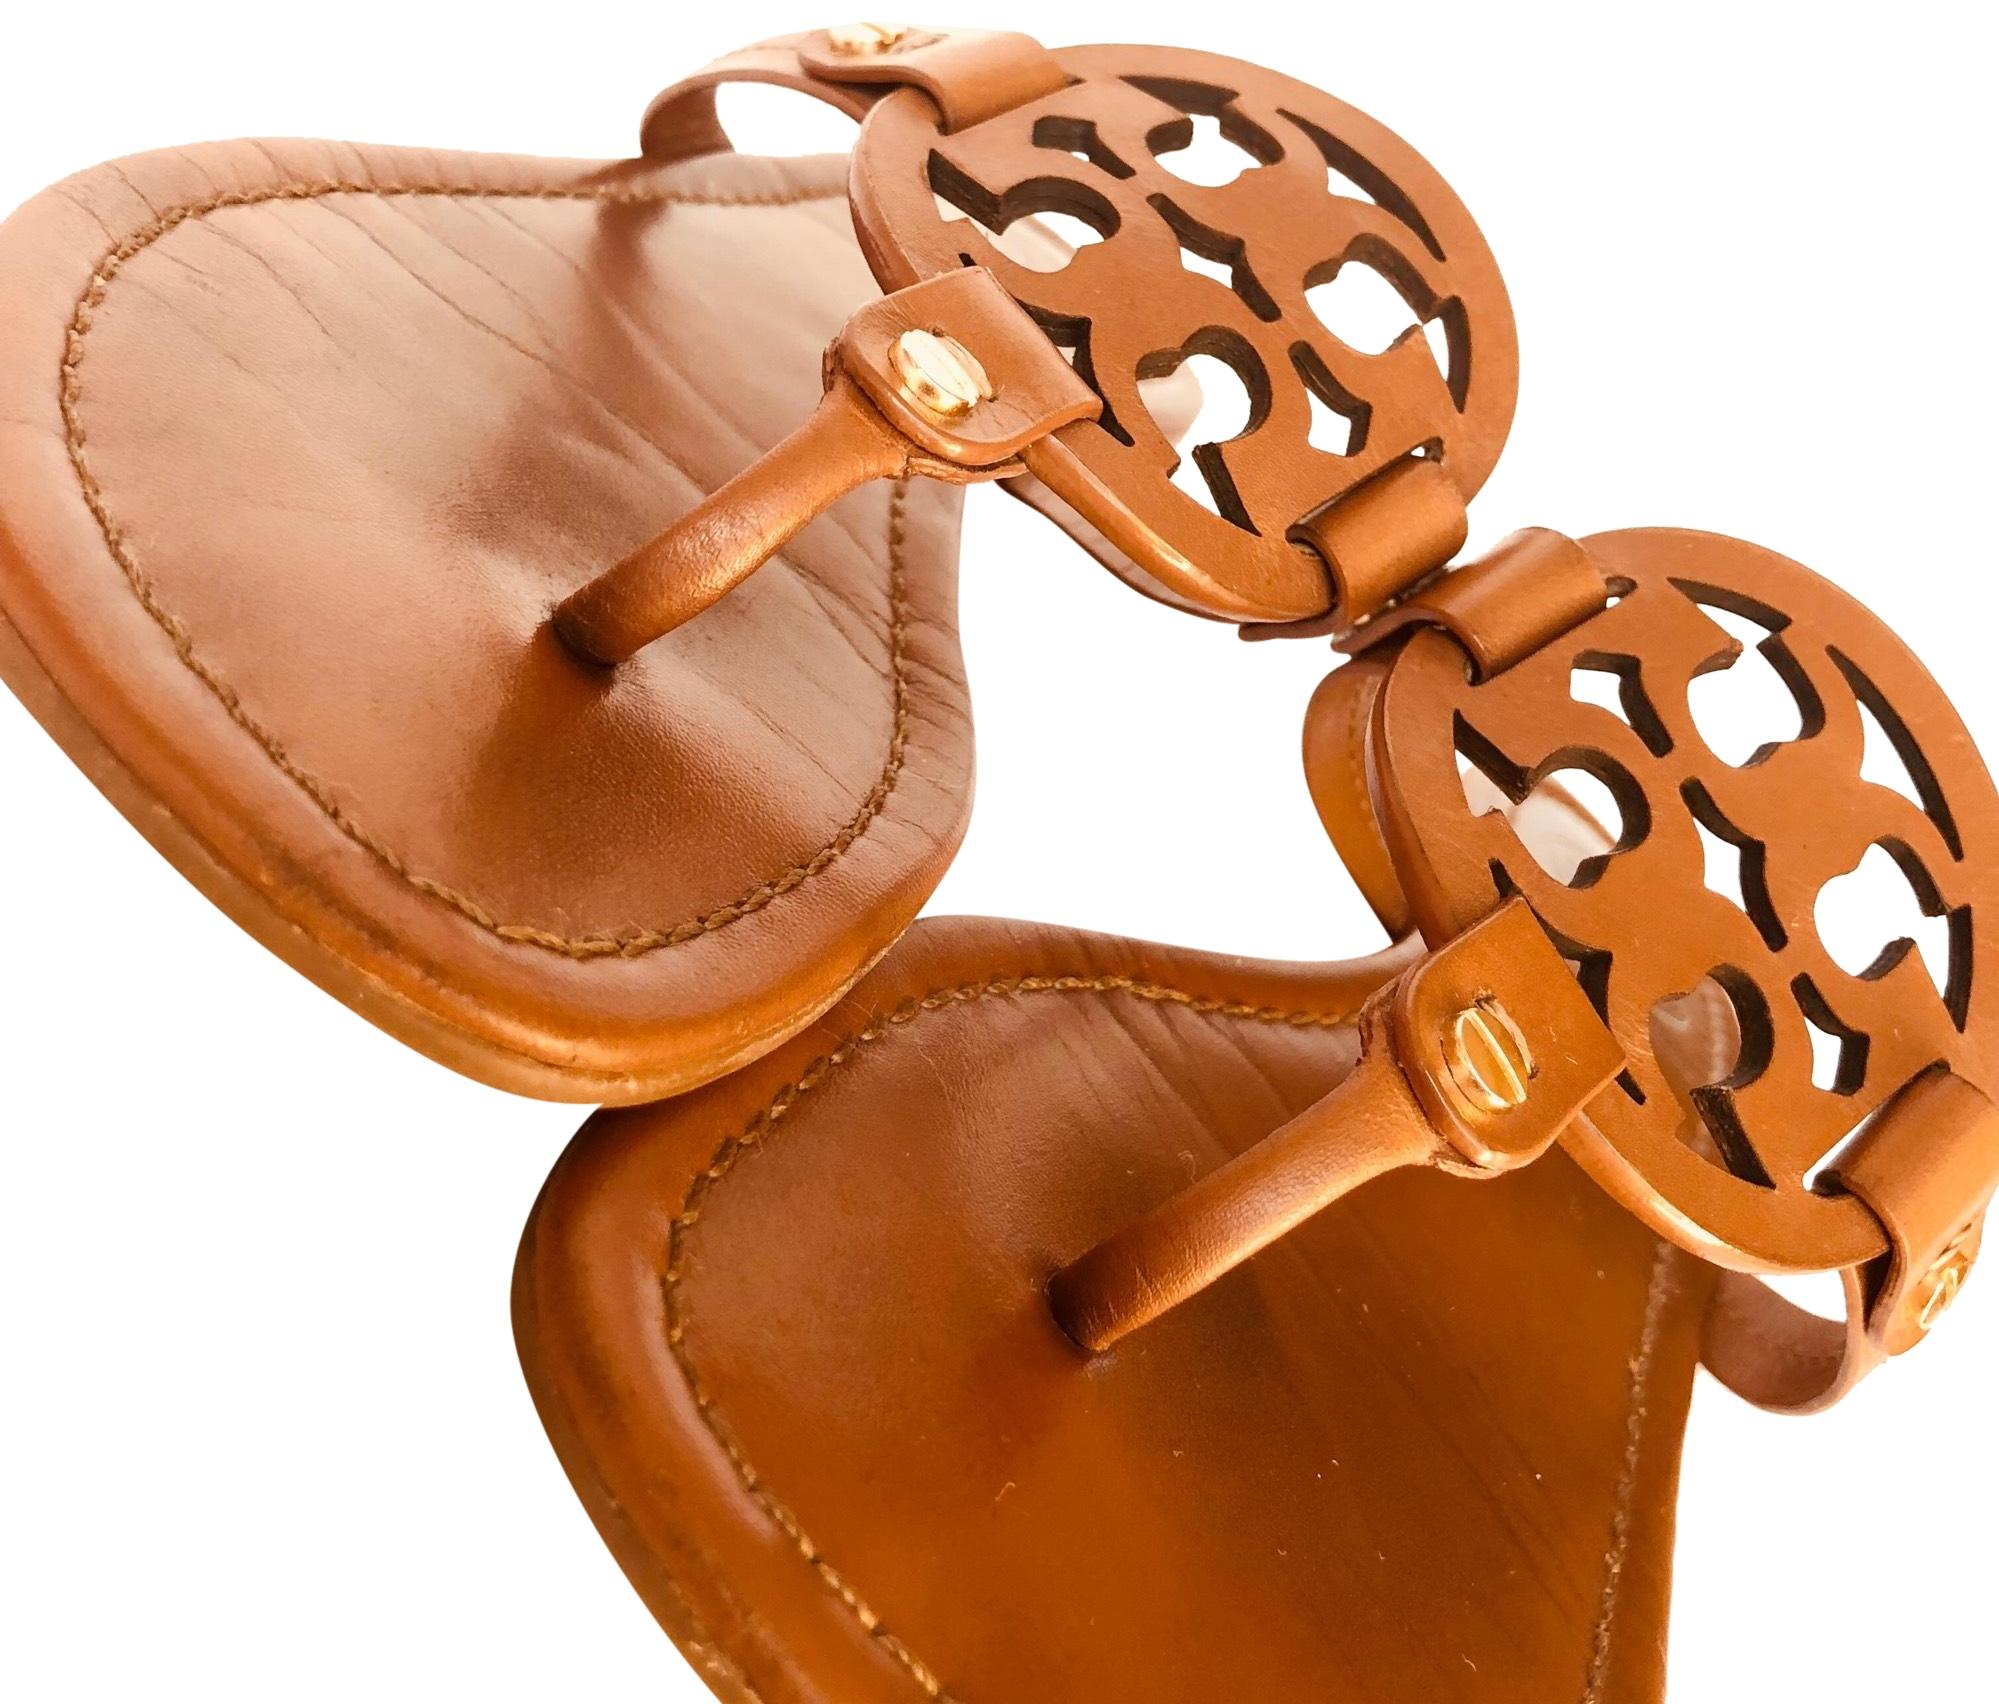 4f24ce8e3f75a Tory Burch Sandals Brown Miller Vintage Vachetta Sandals Burch Size US 8  Regular (M